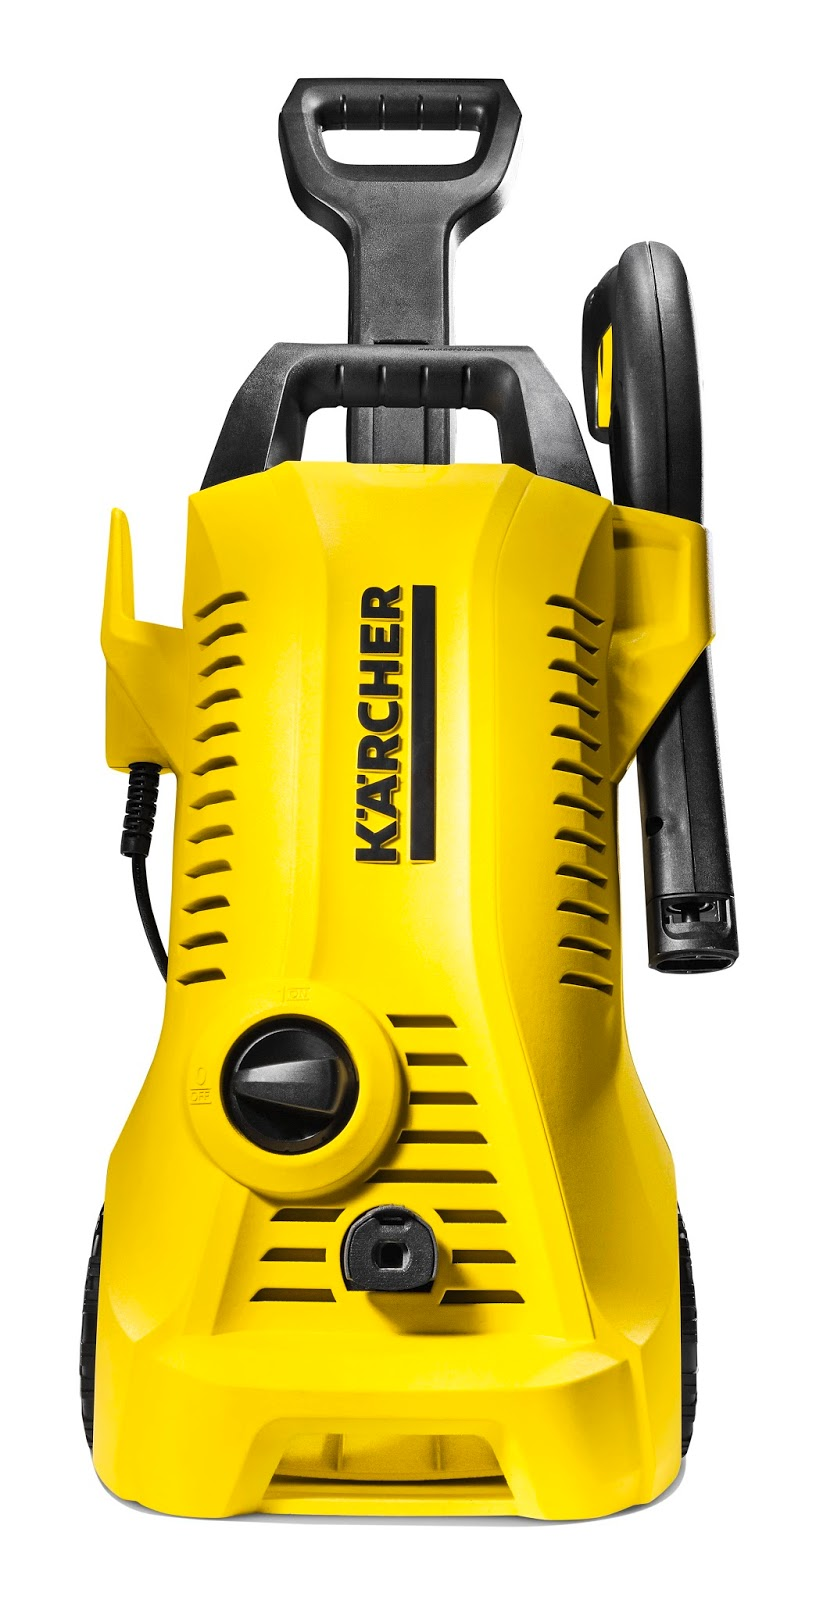 Karcher K2 Full Control Premium Car And Home Pressure Washer Review